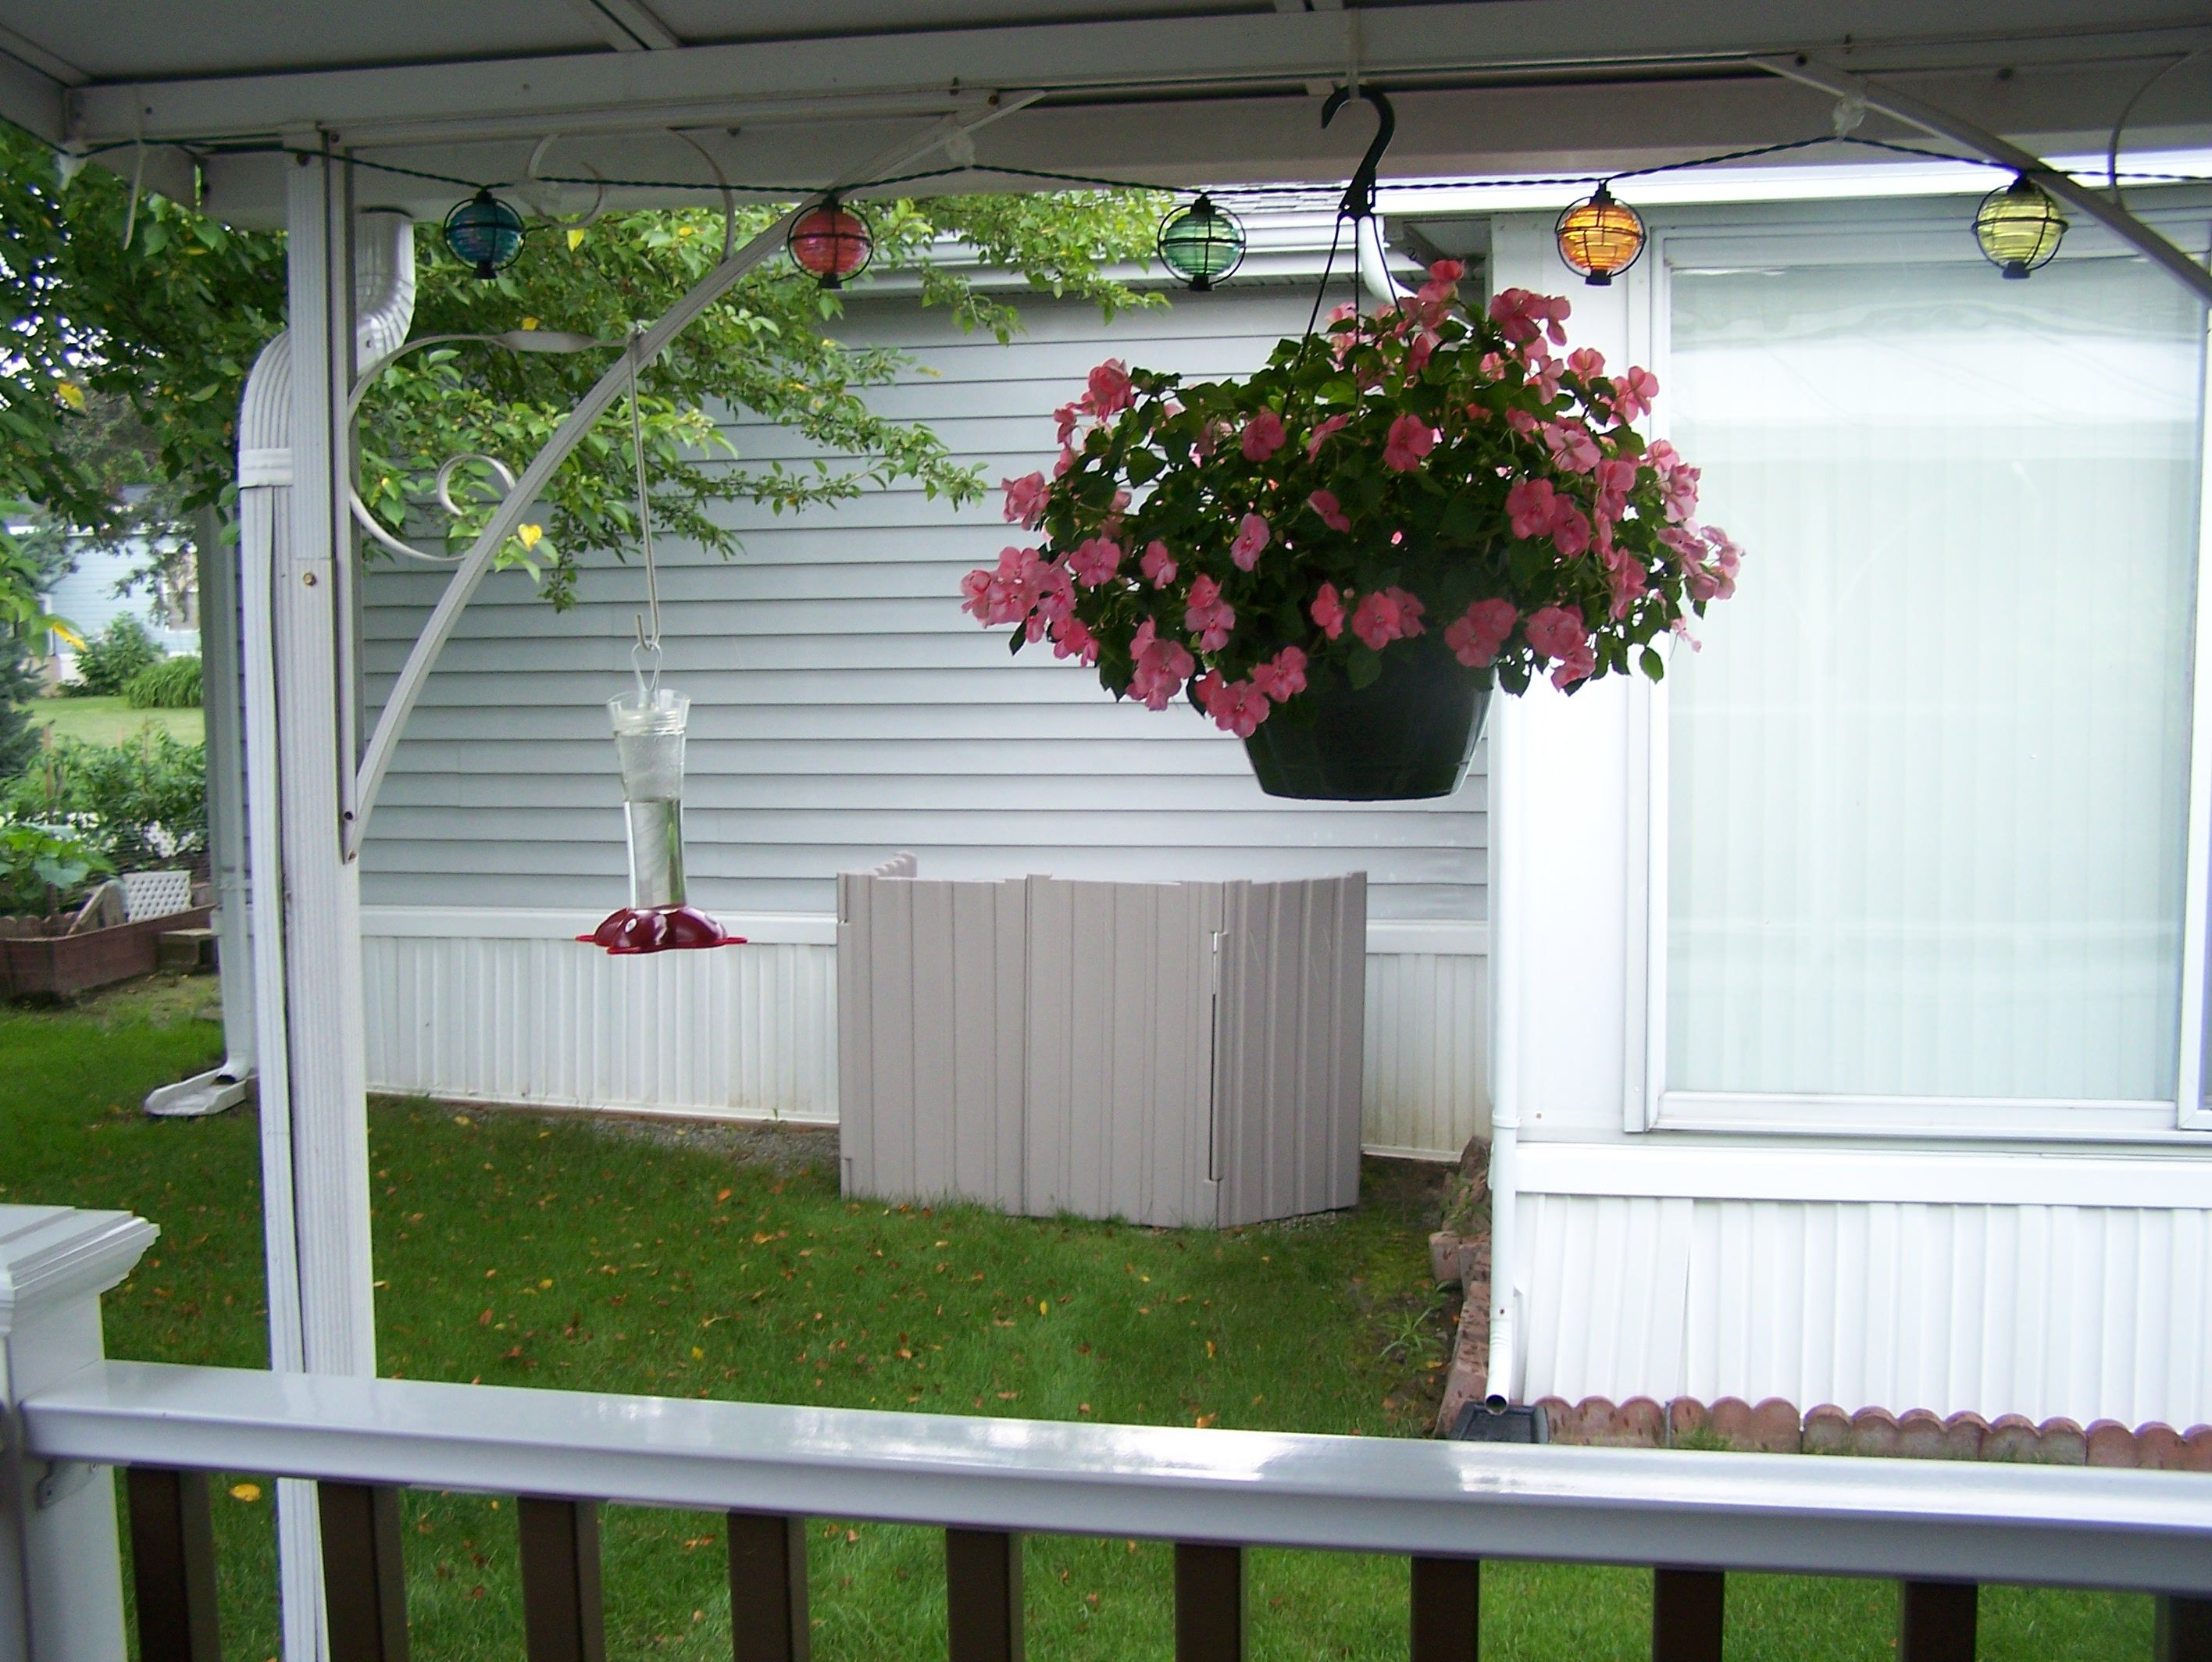 2 Quiet Fence™ placed around a neighbors a/c to stop the